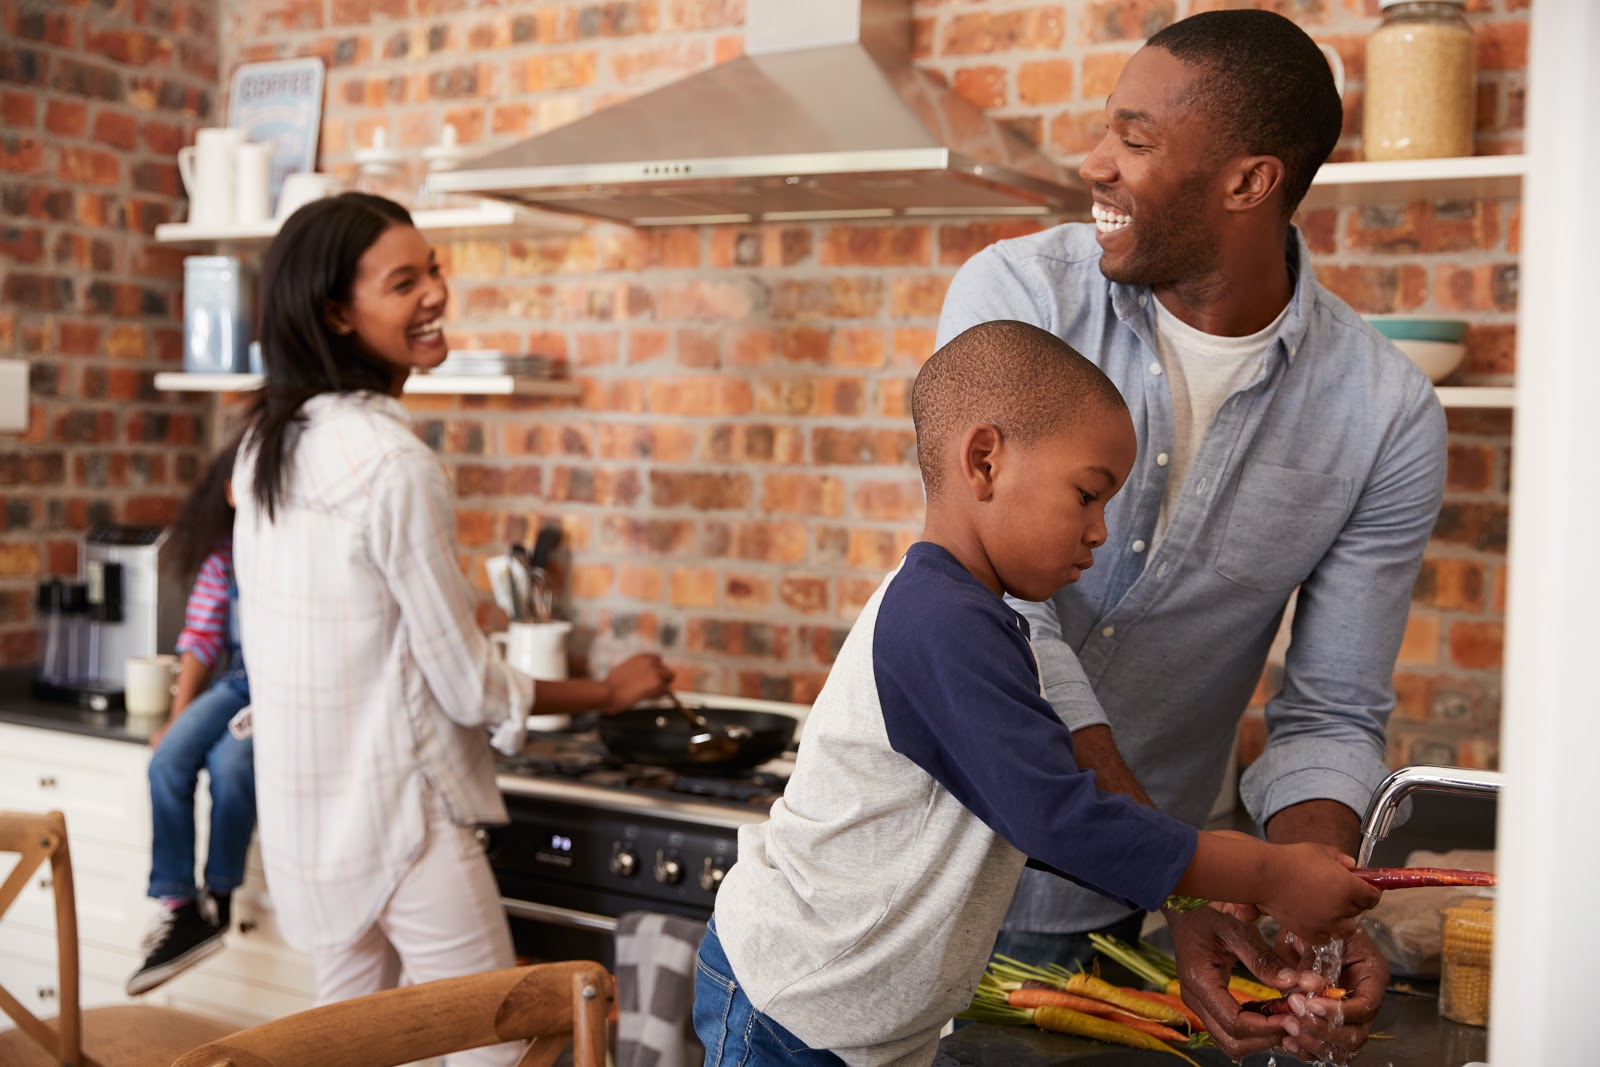 Family cooking in the kitchen together and laughing